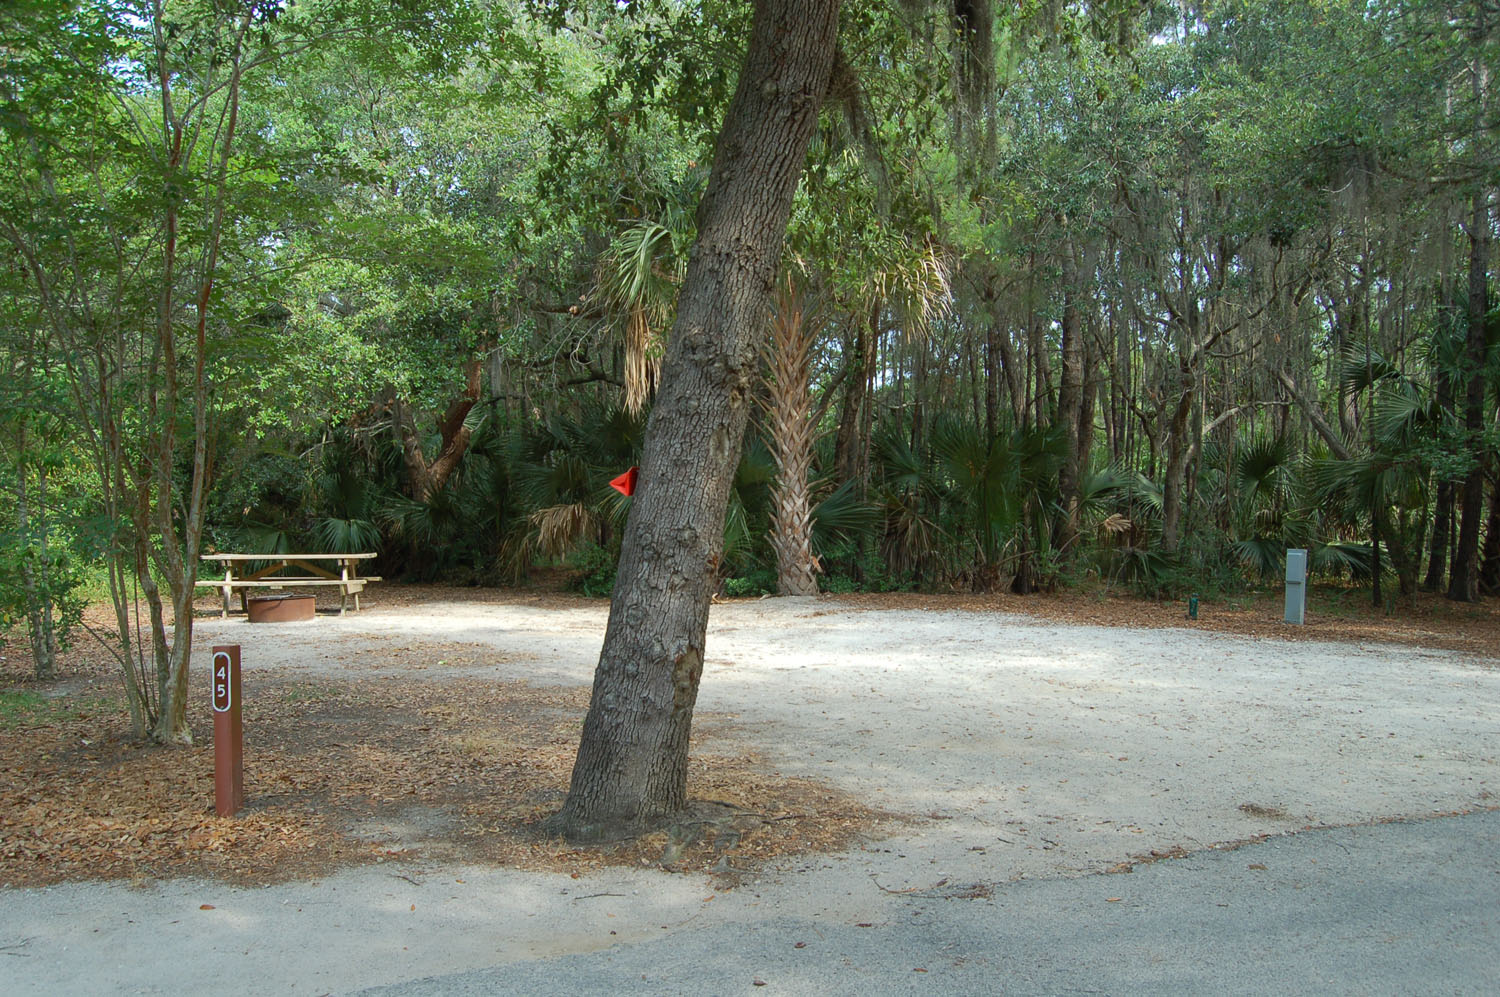 Image of campsite #45 at the Campground at James Island County Park